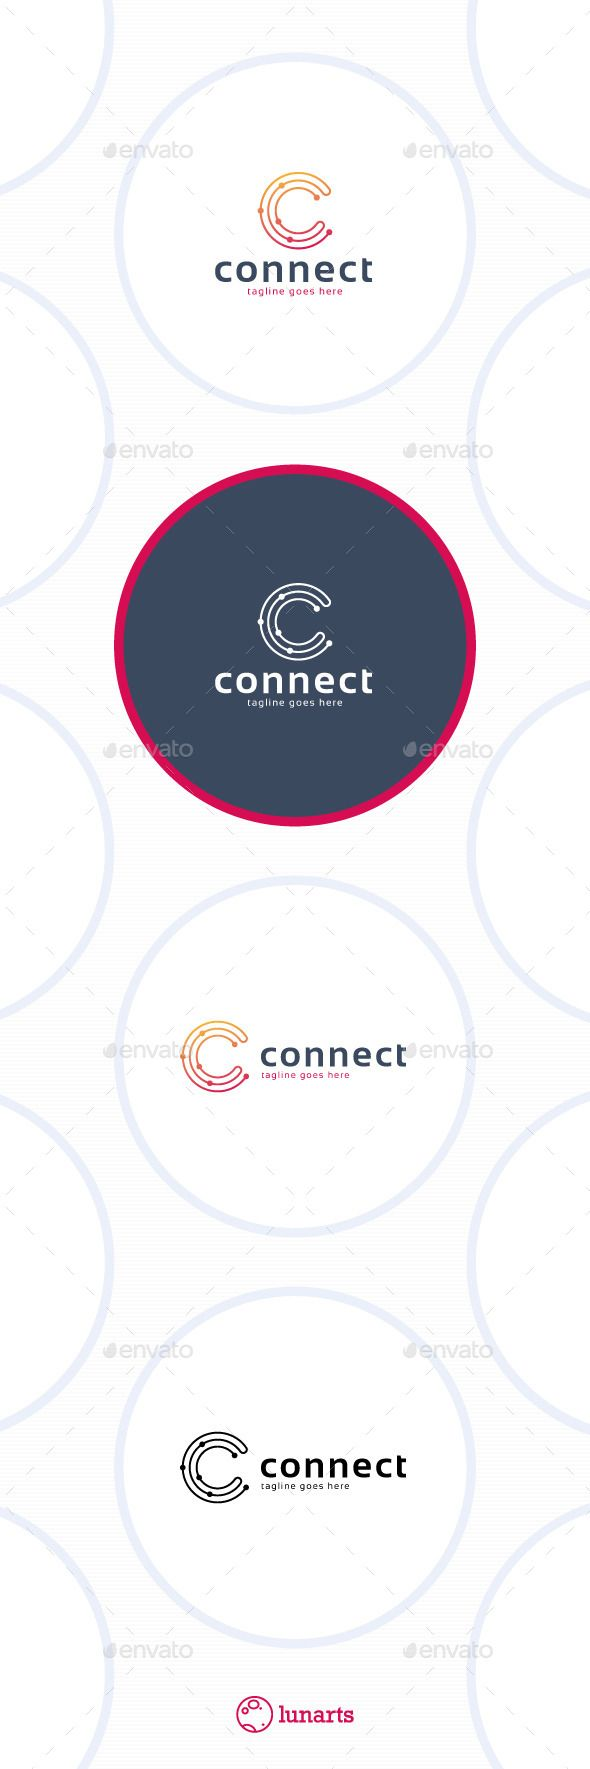 Connect Line Letter C - Logo Design Template Vector #logotype Download it here: http://graphicriver.net/item/connect-line-logo-letter-c/11592971?s_rank=1335?ref=nexion